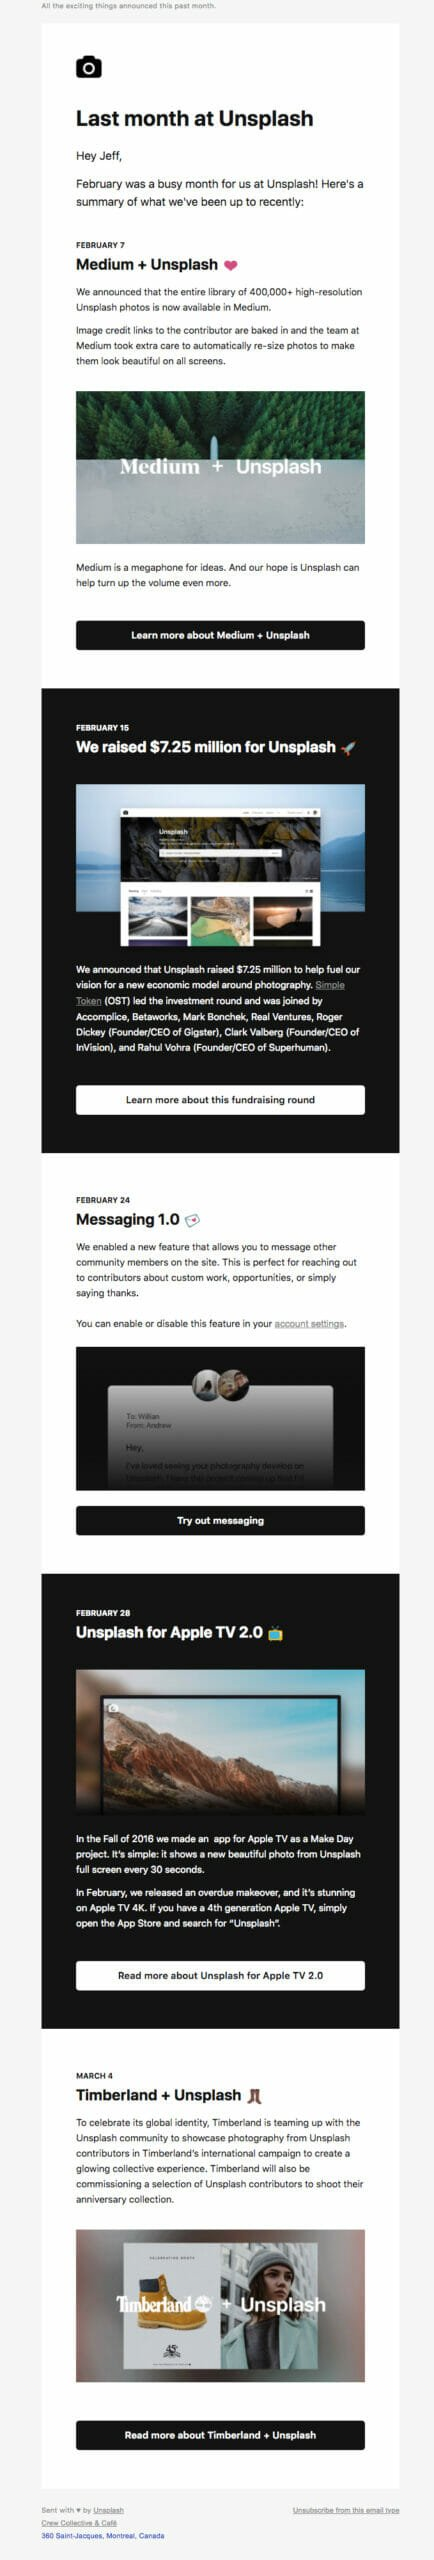 Unsplash is an Update Email Newsletter Format Example For Photographic Blogs